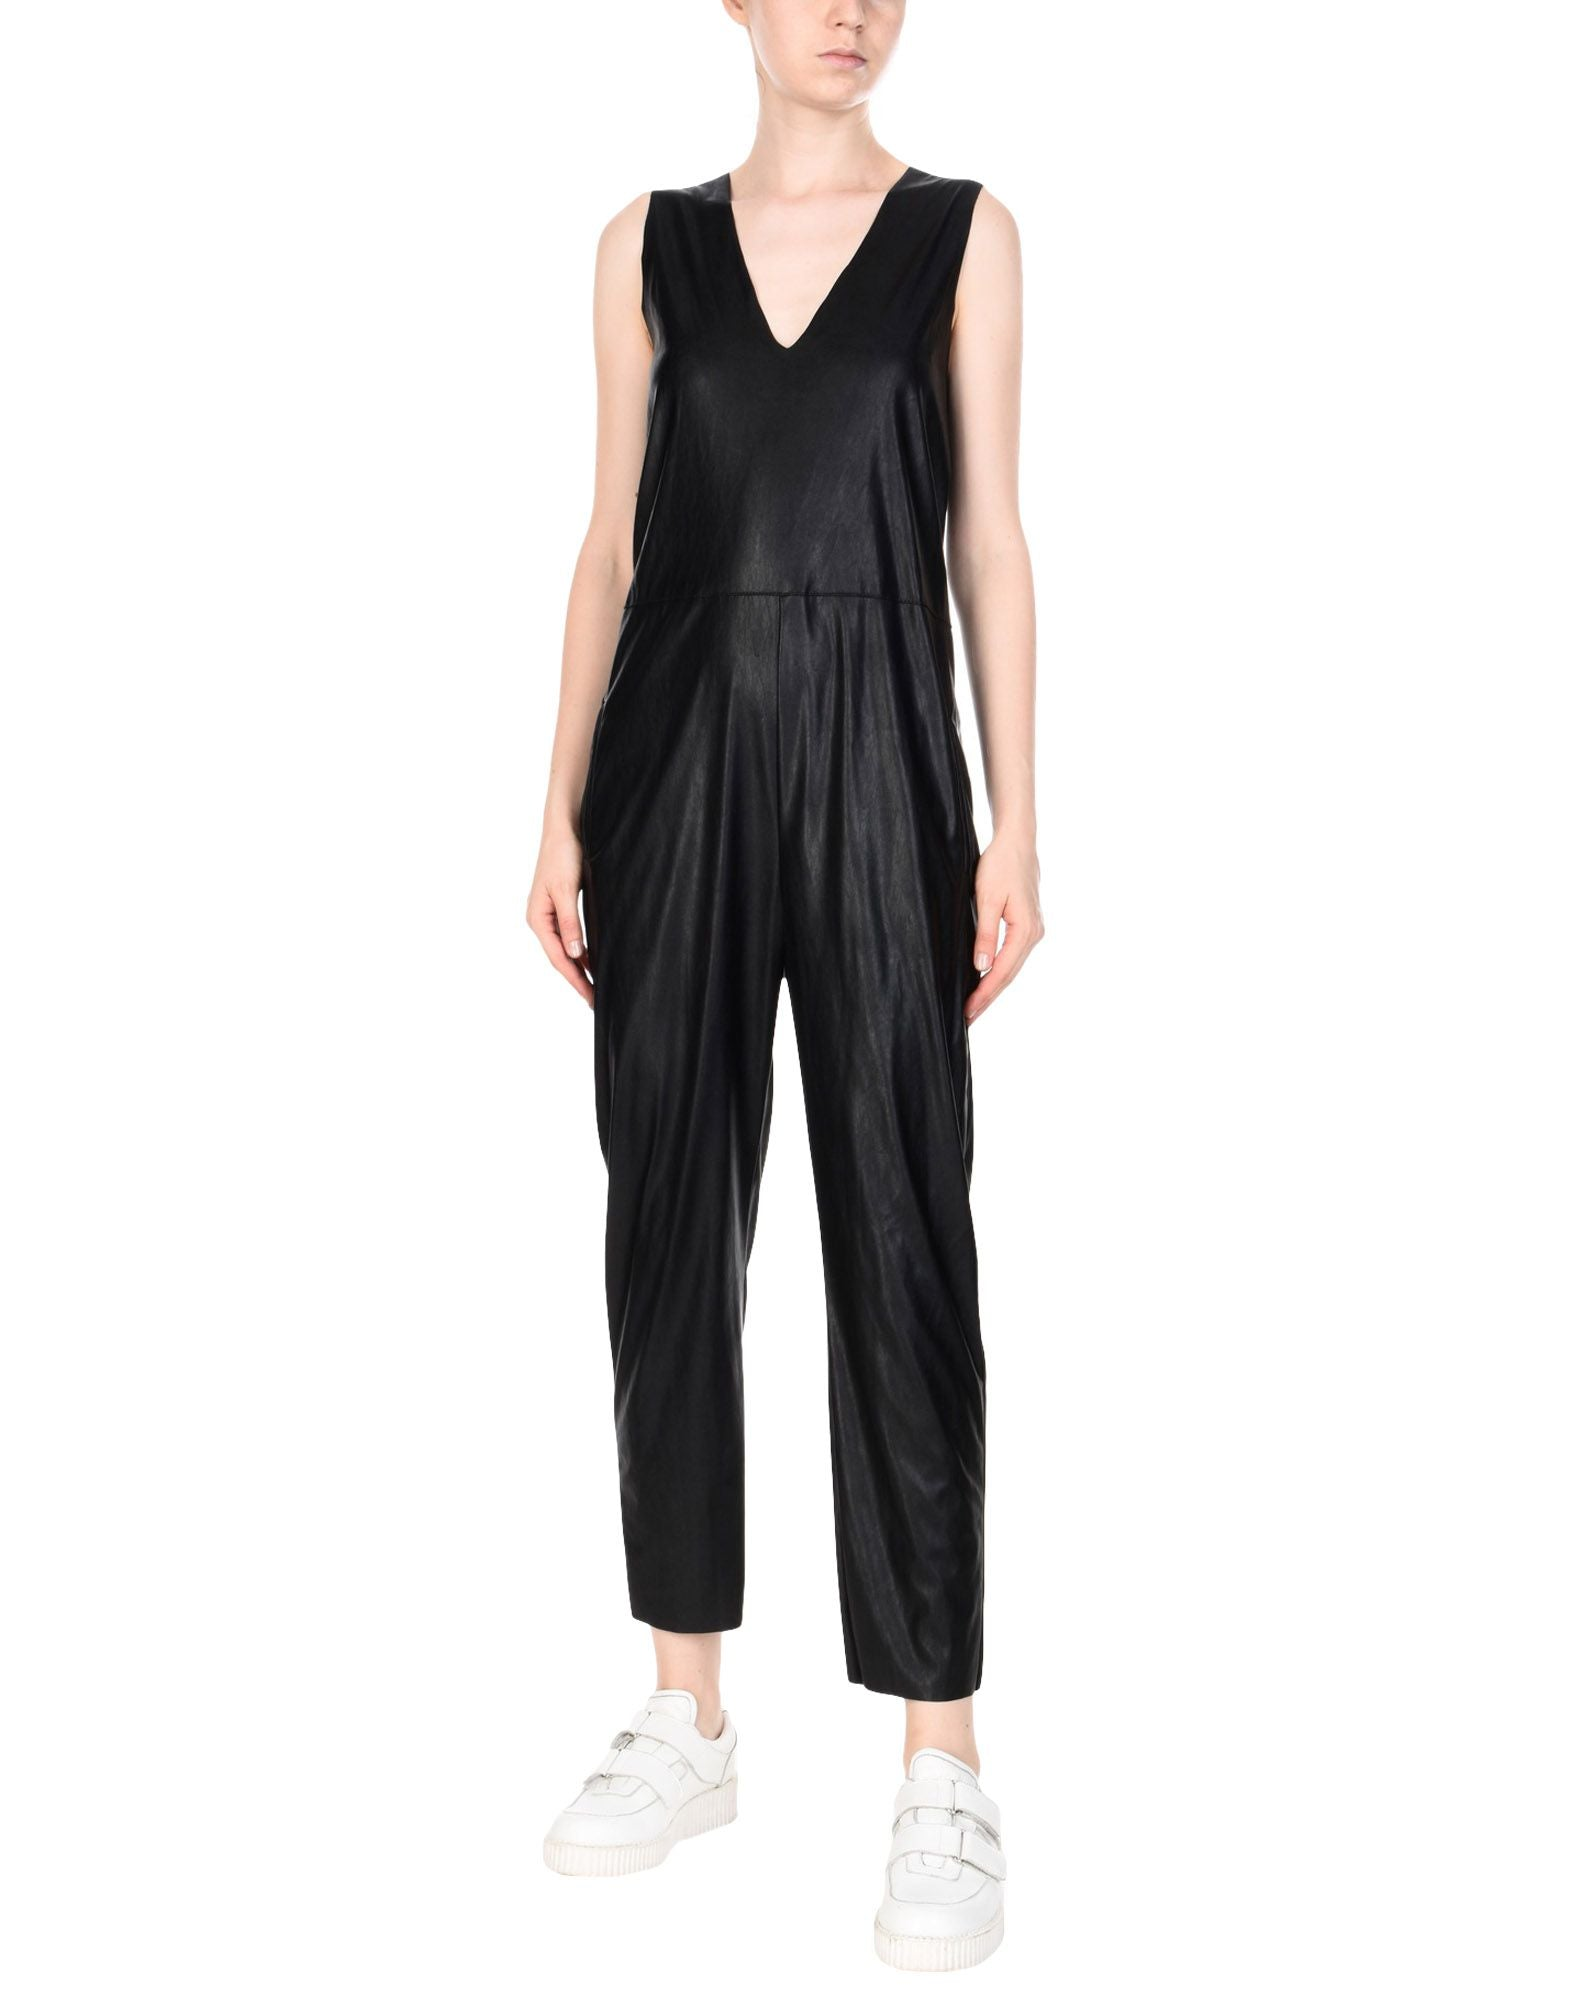 Deep V Neck Women Cropped Leather Jumpsuit -  HOTLEATHERWORLD